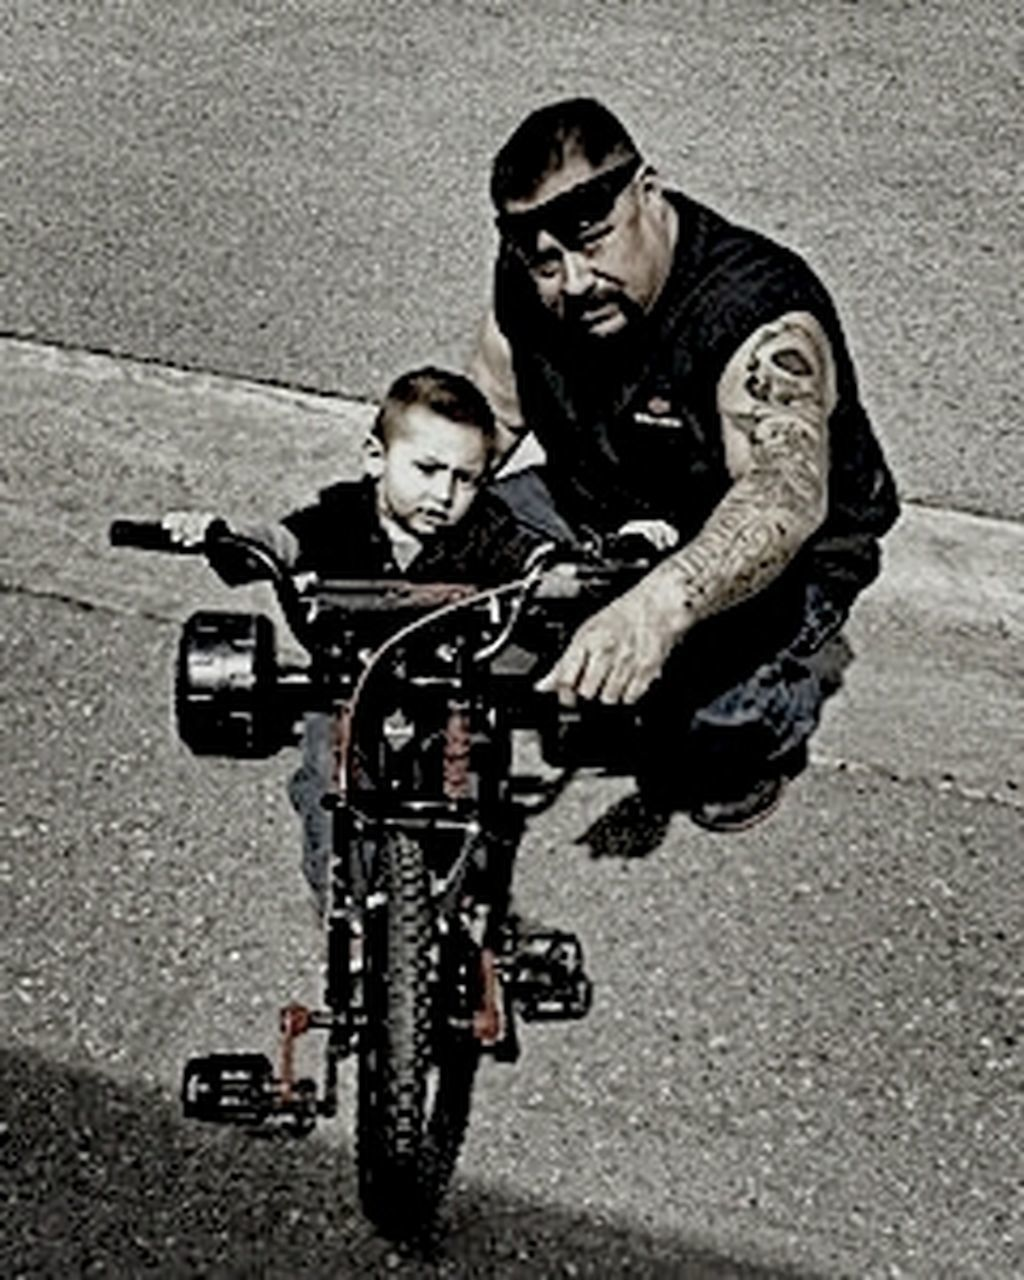 lifestyles, bicycle, transportation, full length, land vehicle, leisure activity, riding, casual clothing, mode of transport, person, street, road, young adult, shadow, cycling, motorcycle, front view, holding